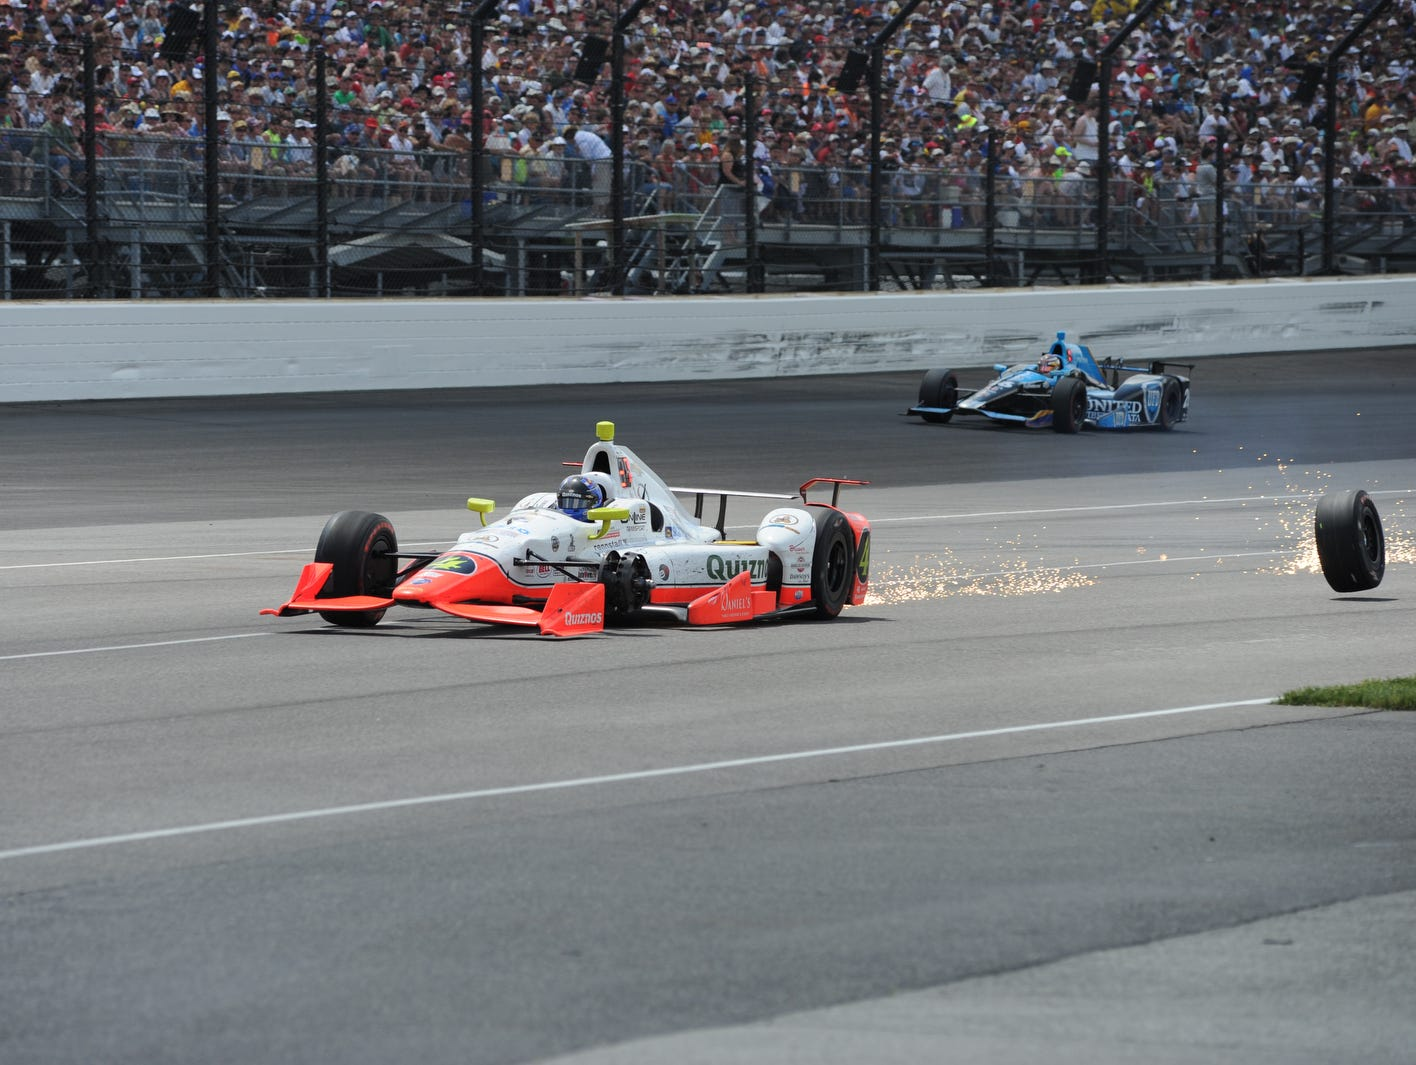 Lazier's car lost a tire during last year's Indianapolis 500. Different pit crew.